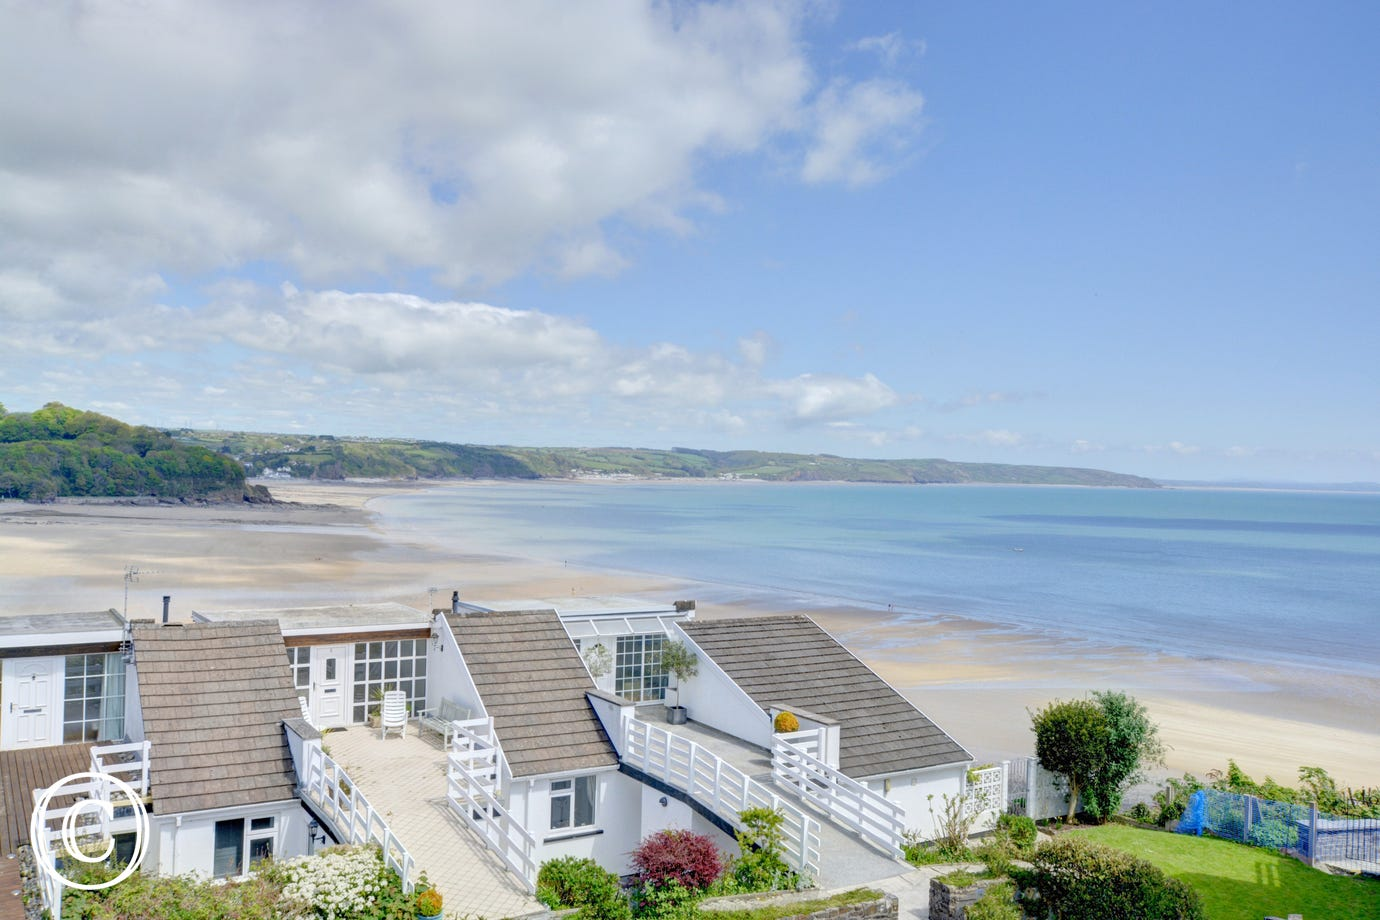 A lovely view for the property of the beach and coastline